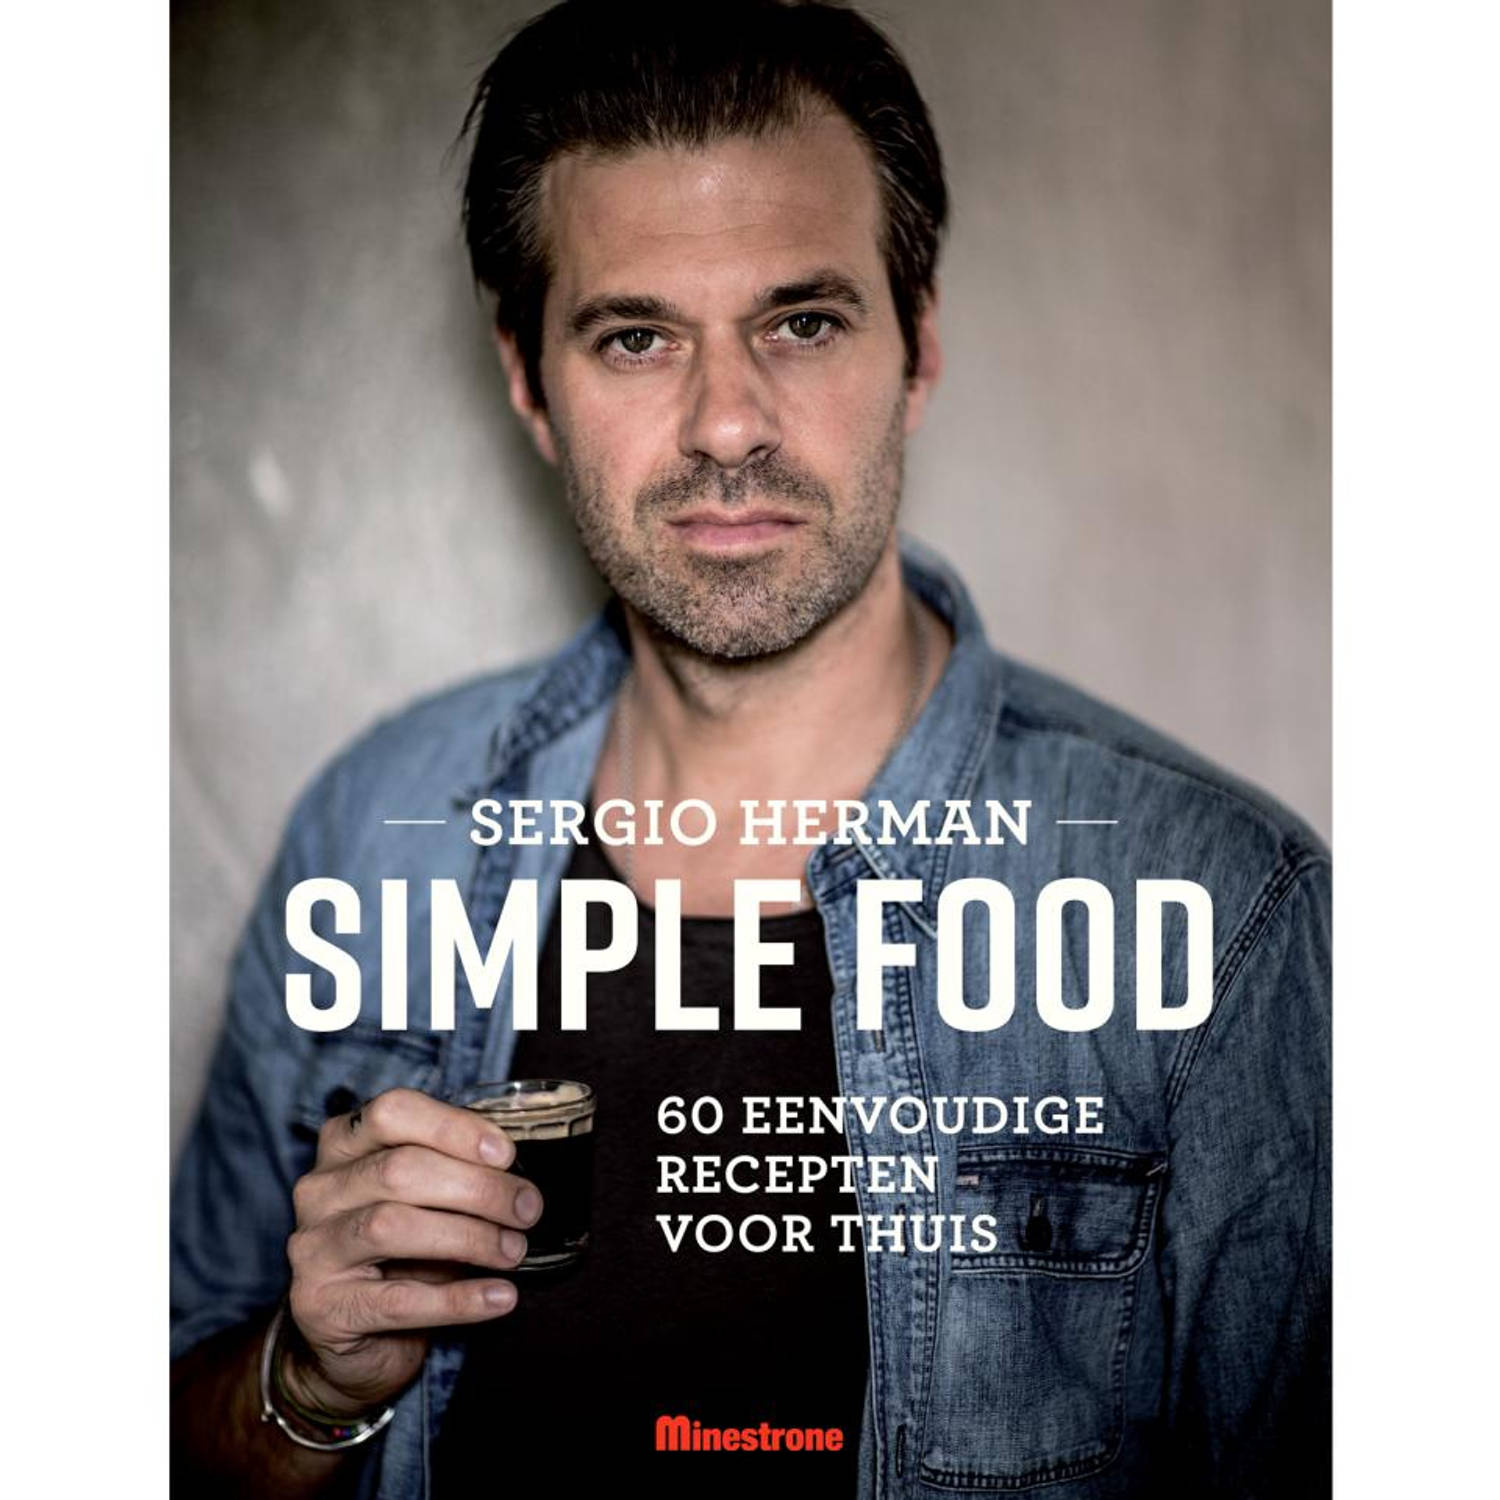 Simple Food - Sergio Herman